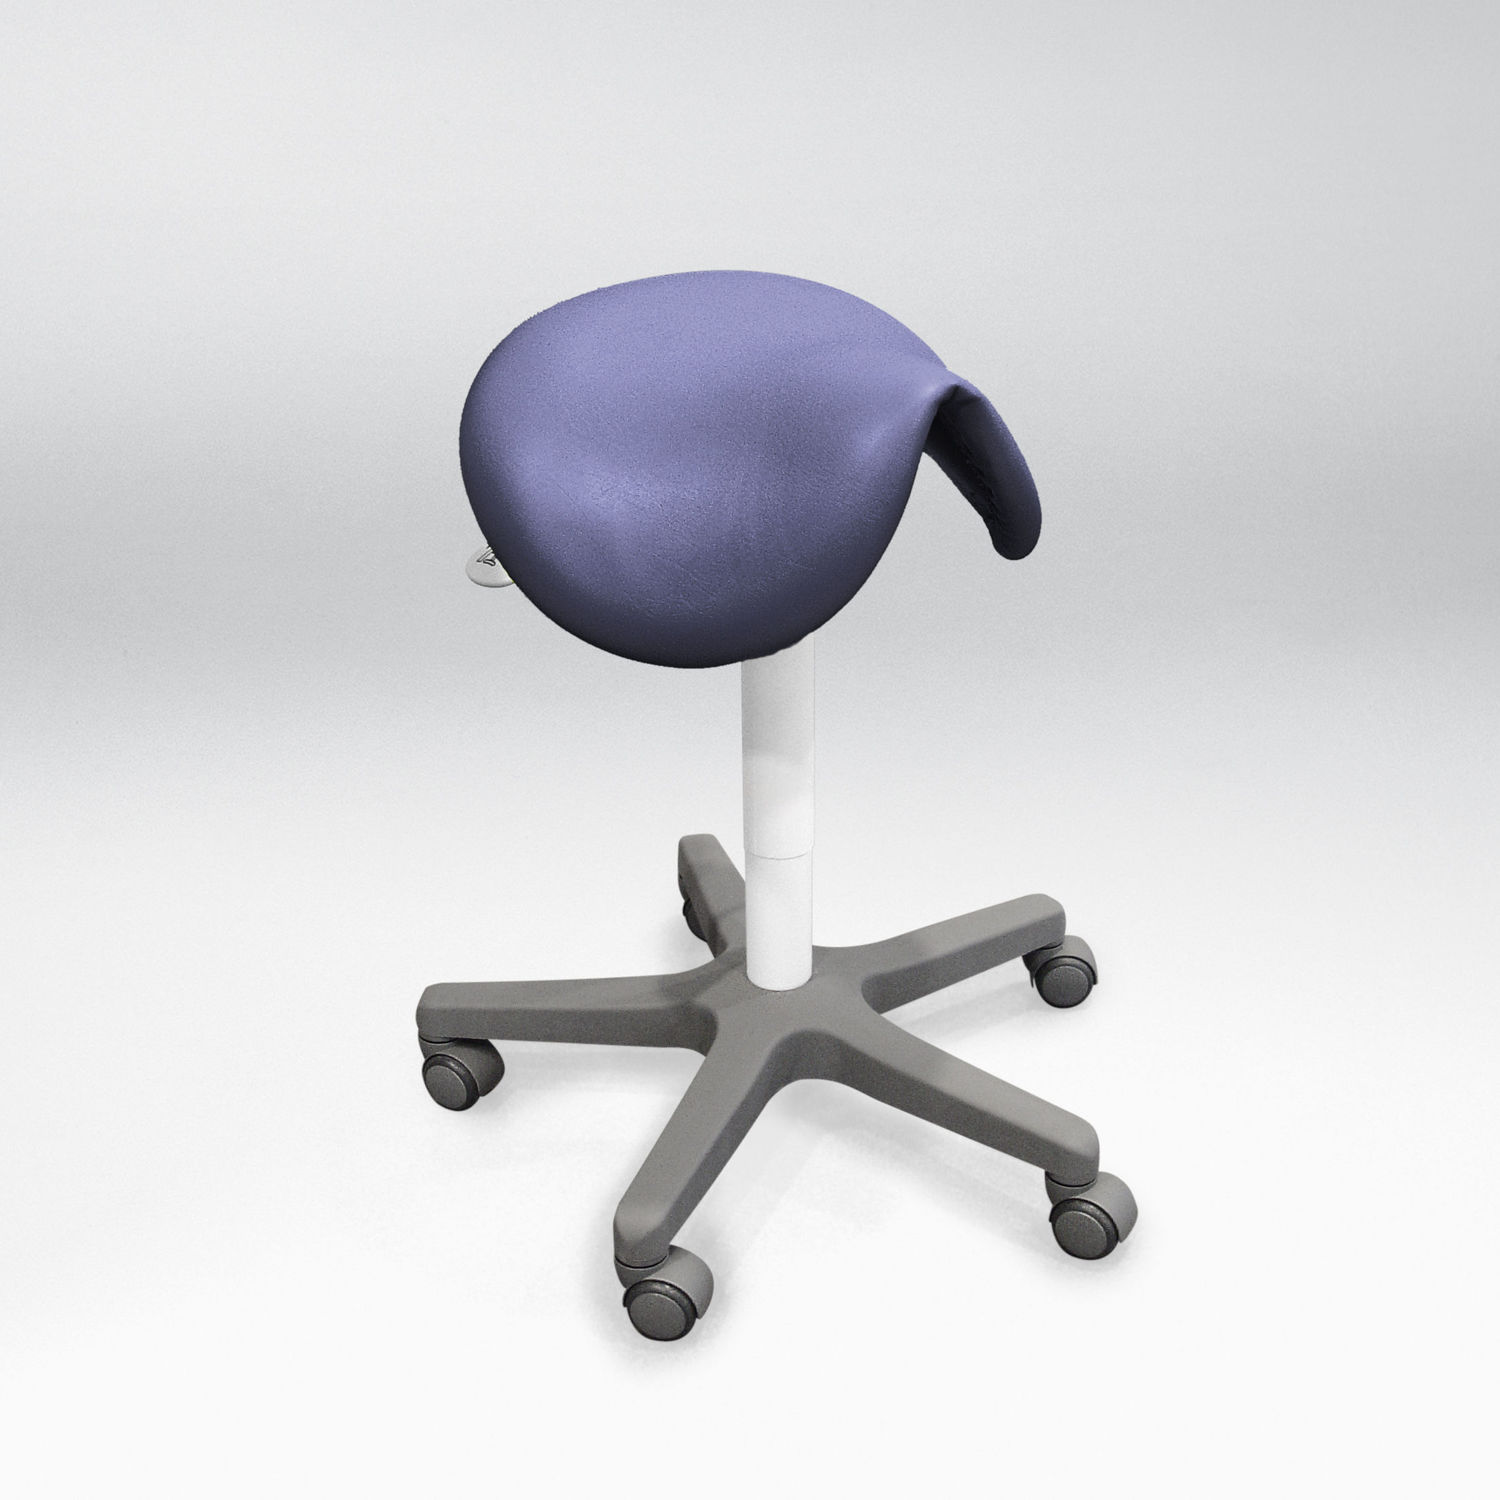 Dental stool / saddle seat / on casters  sc 1 st  MedicalExpo & Dental stool / saddle seat / on casters - Planmeca islam-shia.org